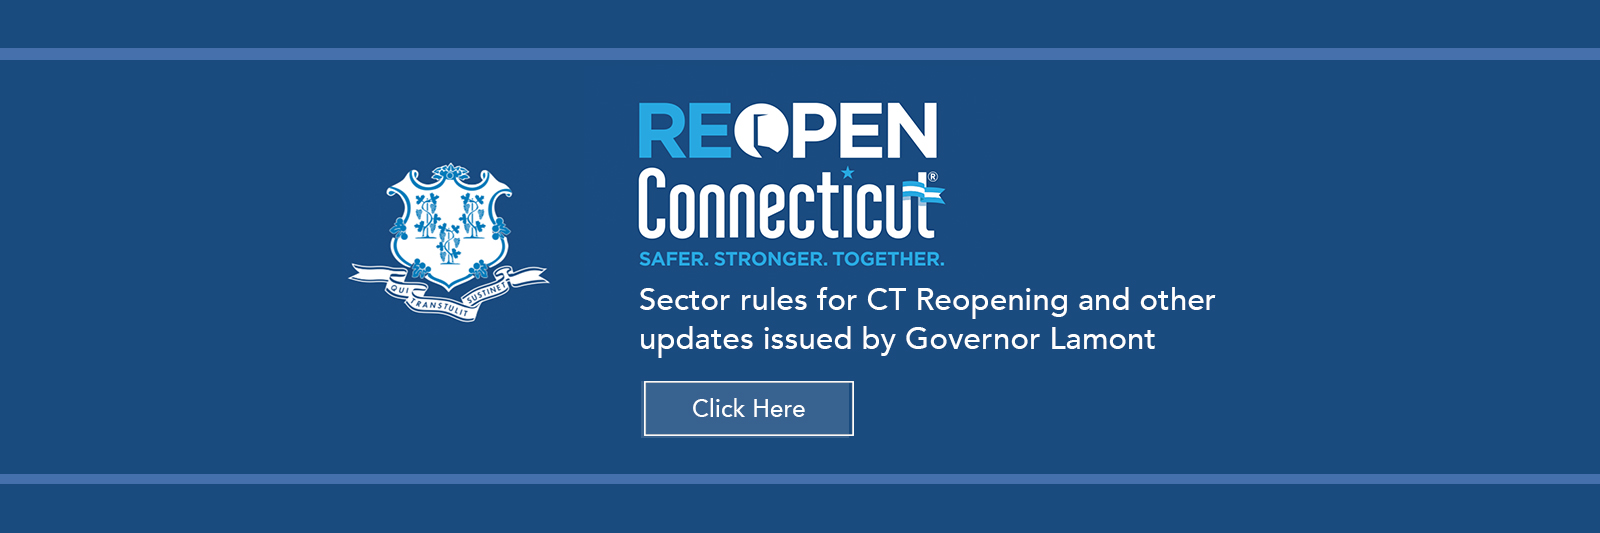 Reopen CT updates from Gov Lamont